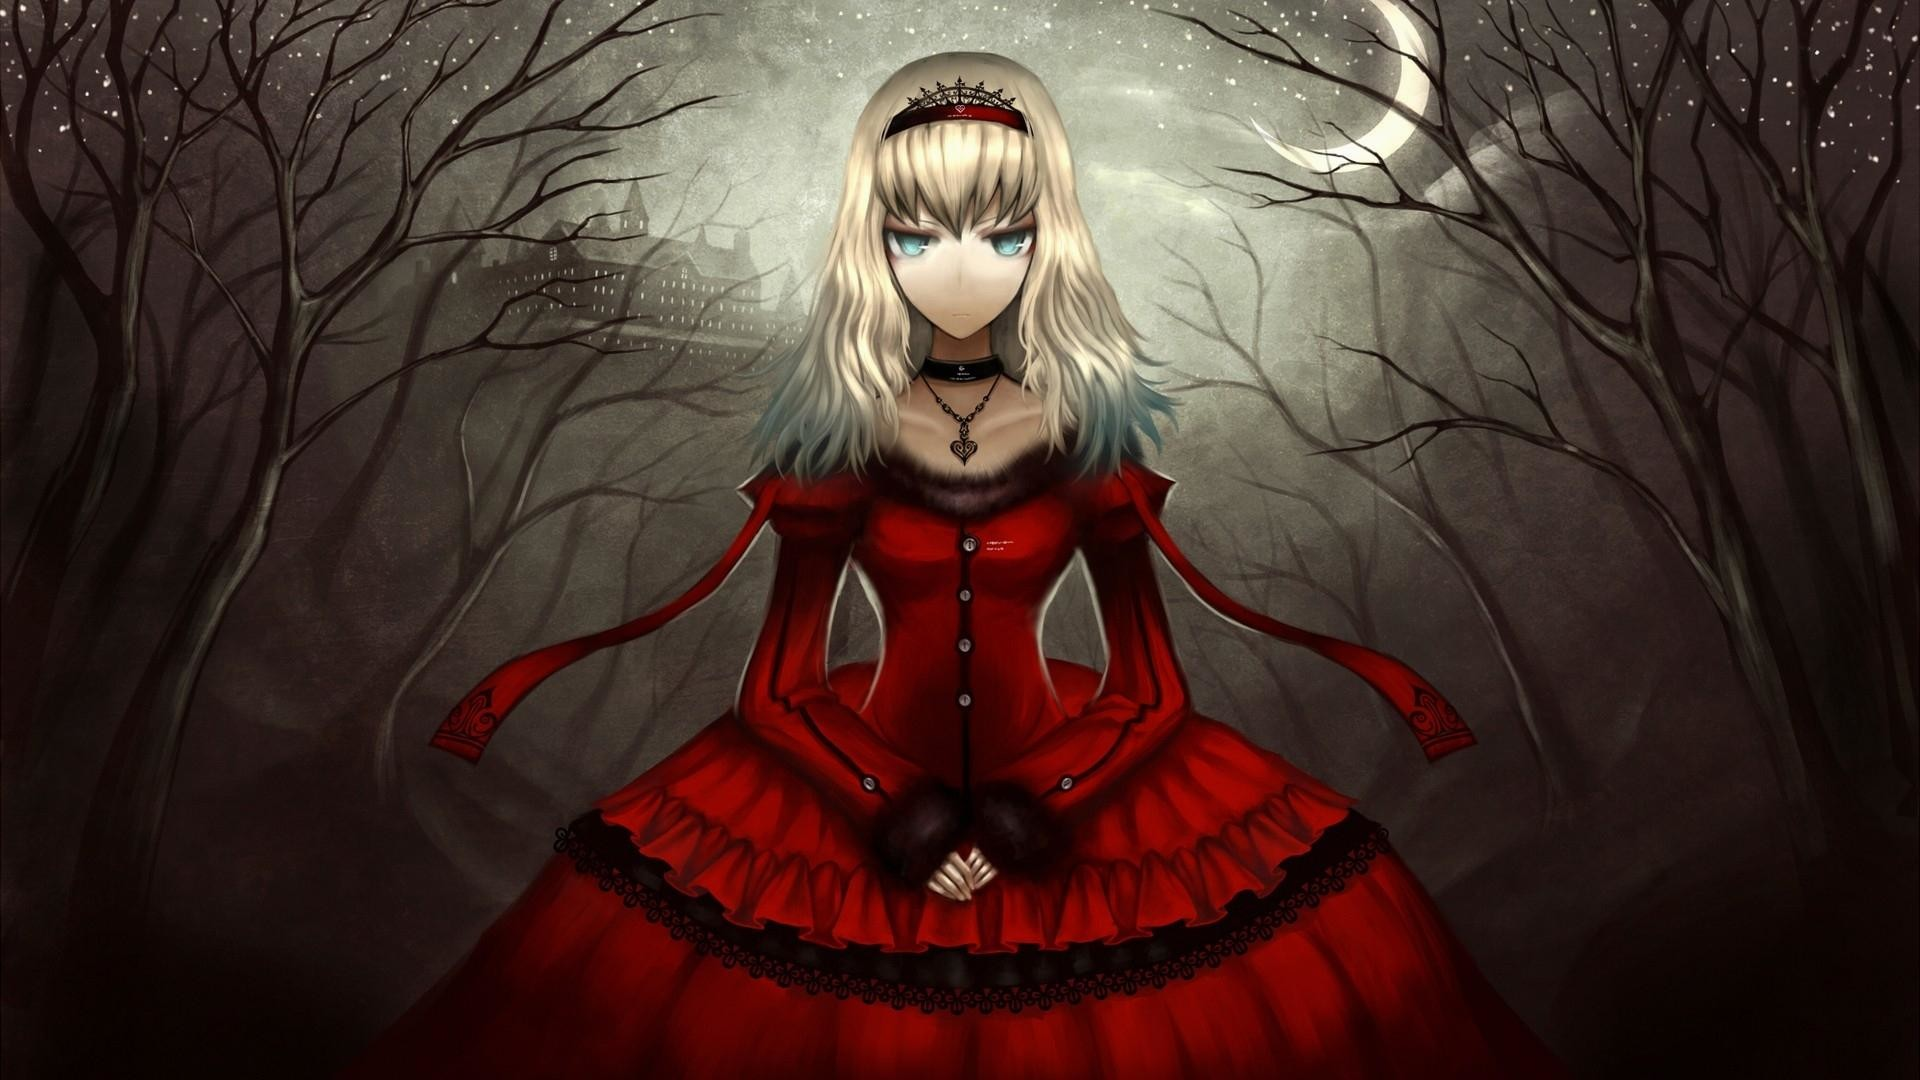 wallpaper.wiki-Girl-Gothic-Images-1920×1080-PIC-WPE005878